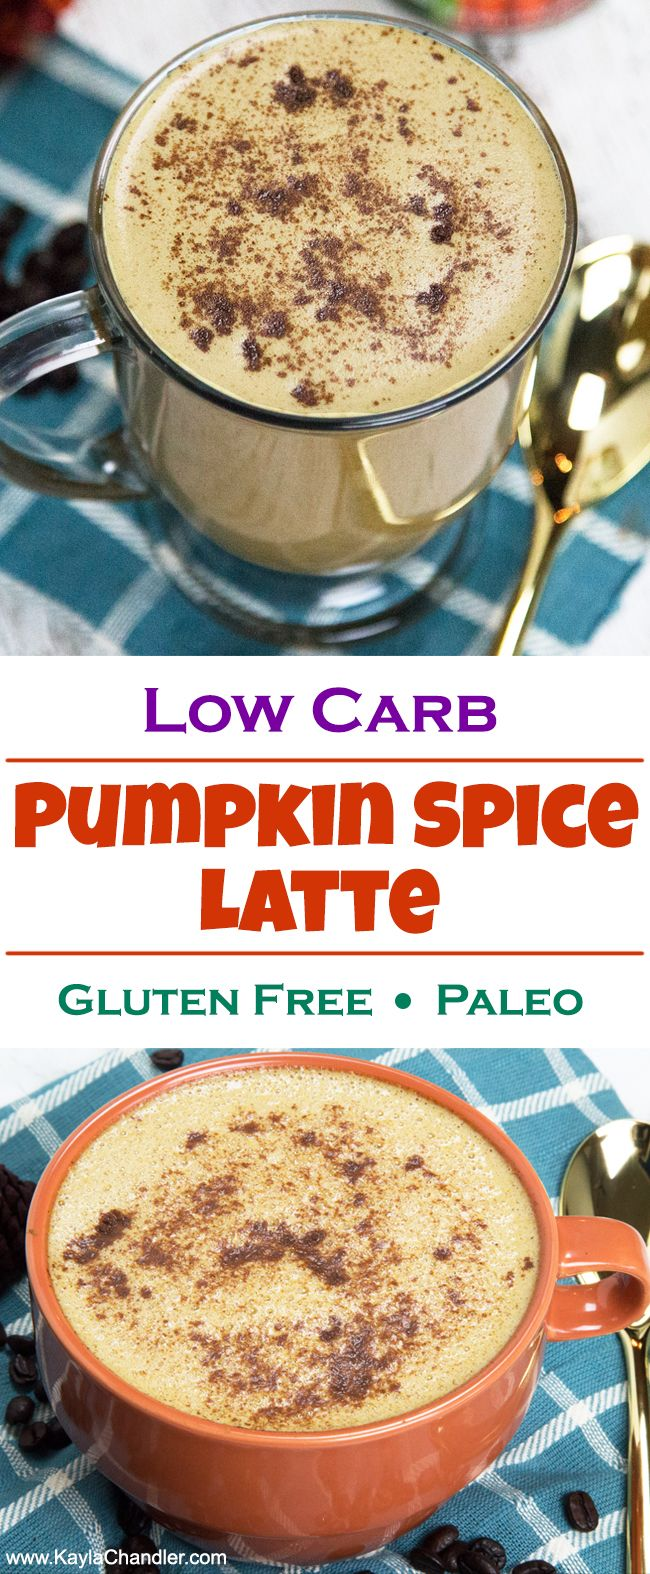 Low Carb Pumpkin Spice Latte - Gluten Free & Paleo Option!... This is super creamy and frothy and chock-full of healthy fats.